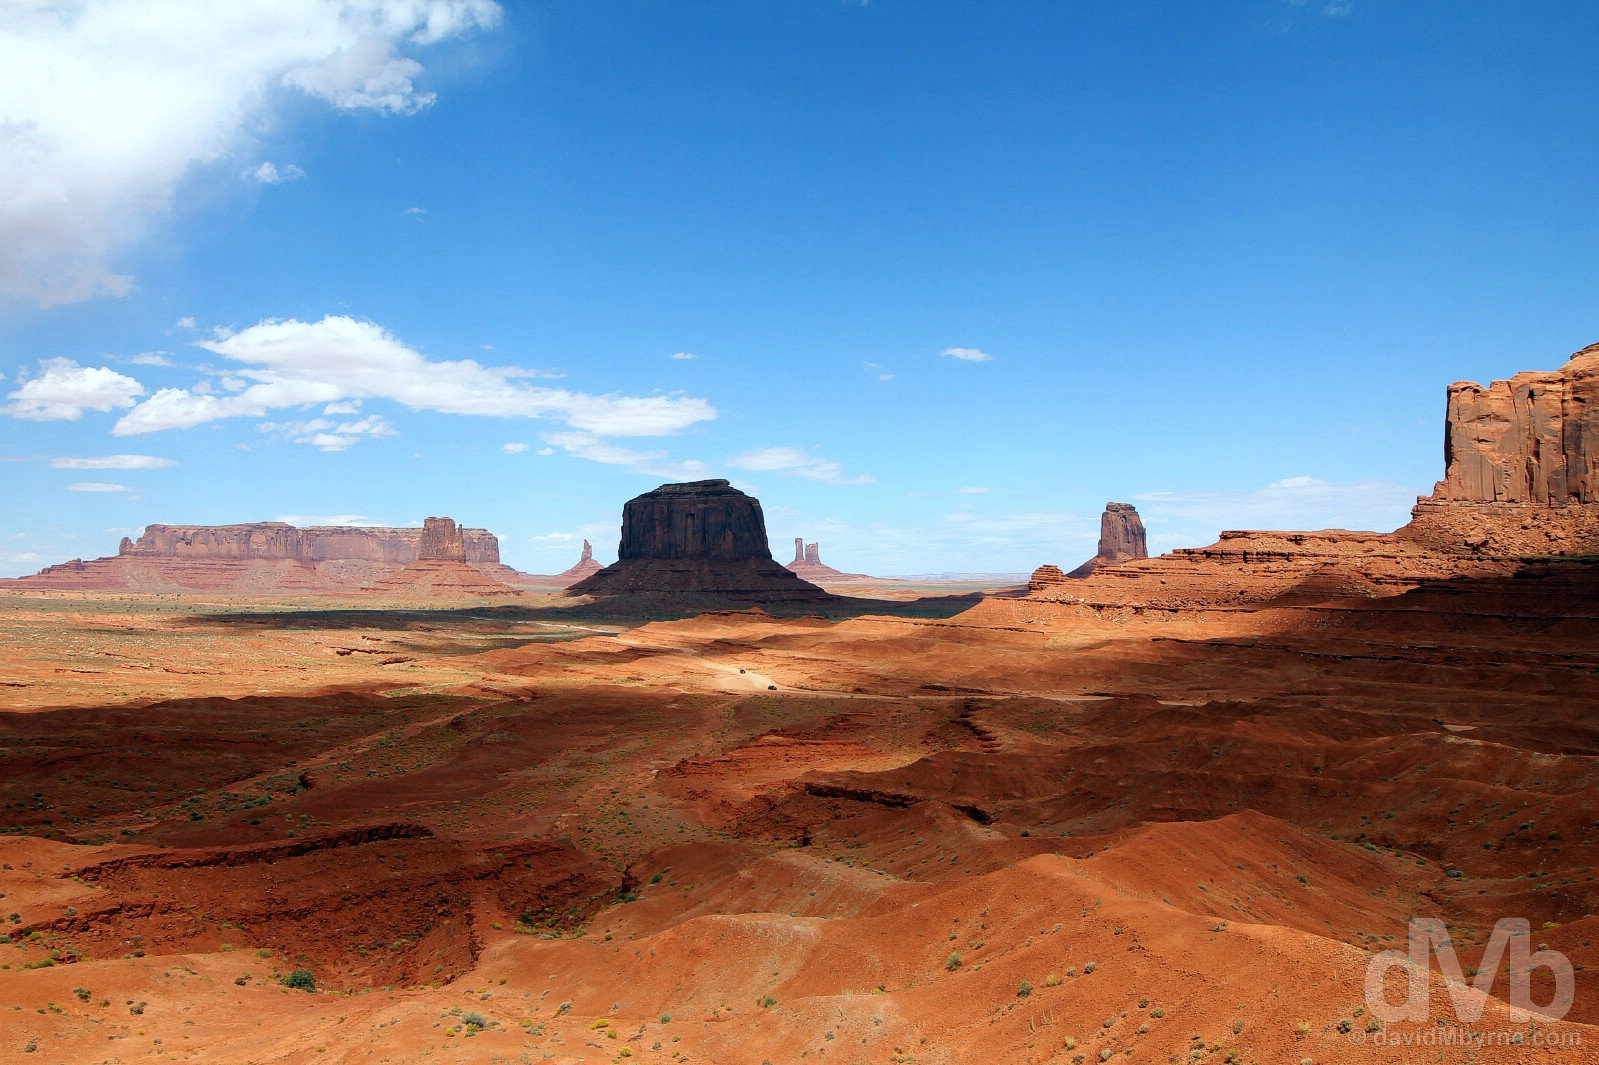 The view from John Ford's Point on Valley Drive in Monument Valley, Navajo Nation, Arizona. September 11, 2016.